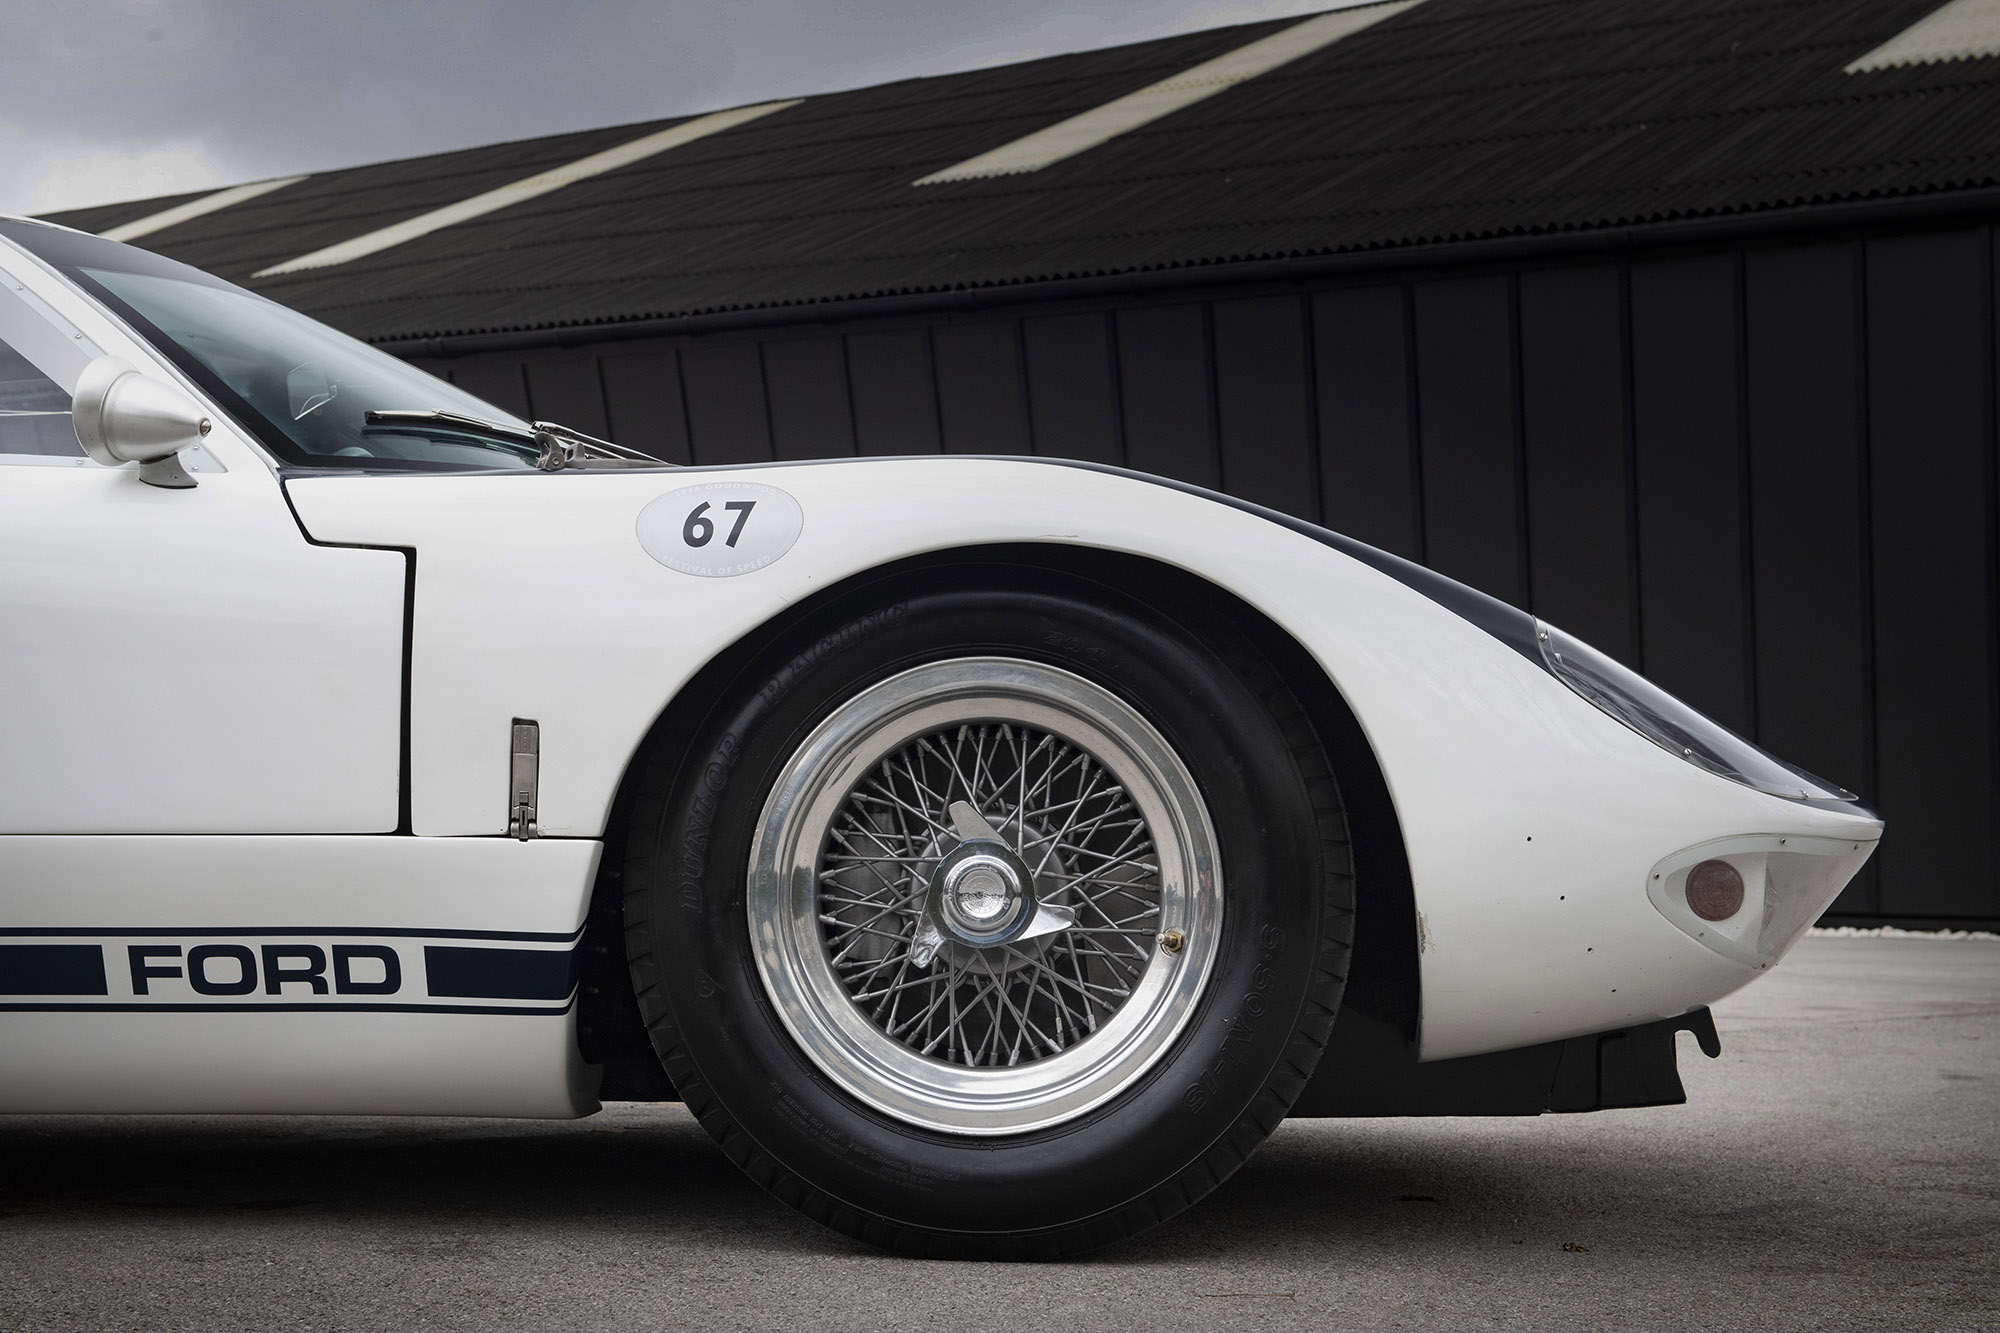 1964 Ford GT40 Prototype GT/105 front profile wire wheel